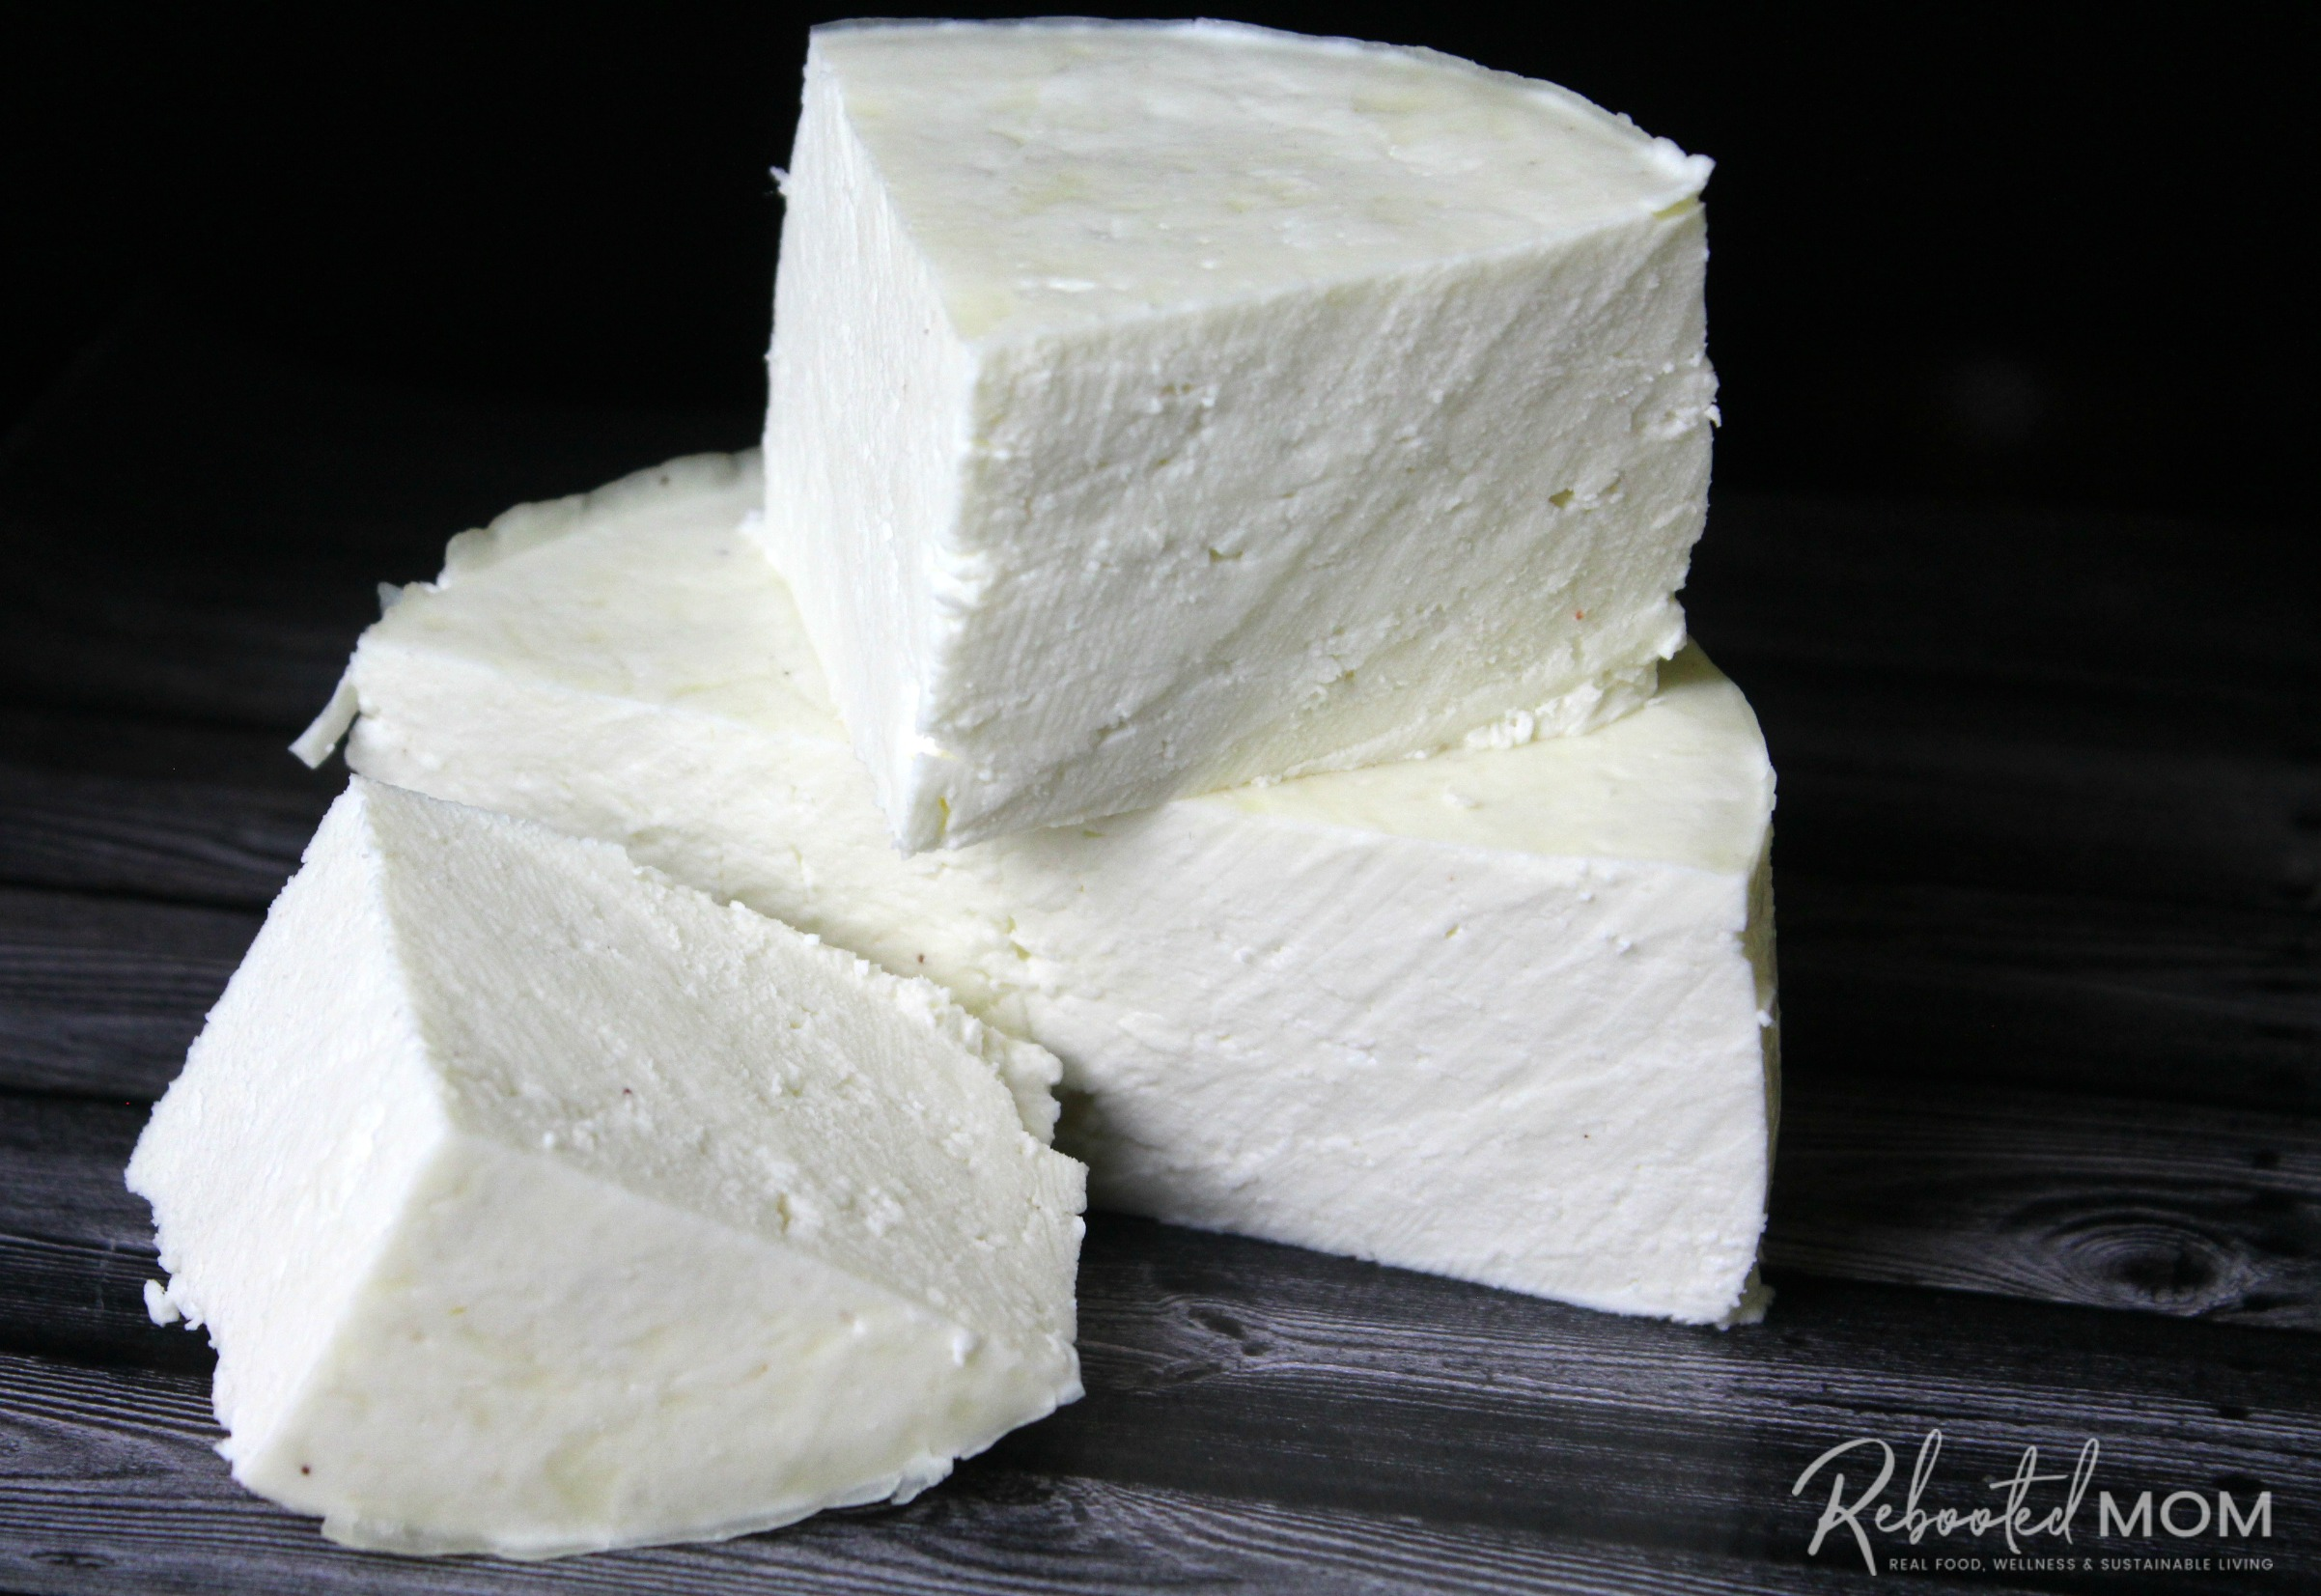 This Yogurt-Cultured Rennet Cheese Recipe is an easy way to learn the art of cheesemaking and requires just 3 simple ingredients!    #rennet #cheese #yogurt #cheesemaking #realfood #rawmilk